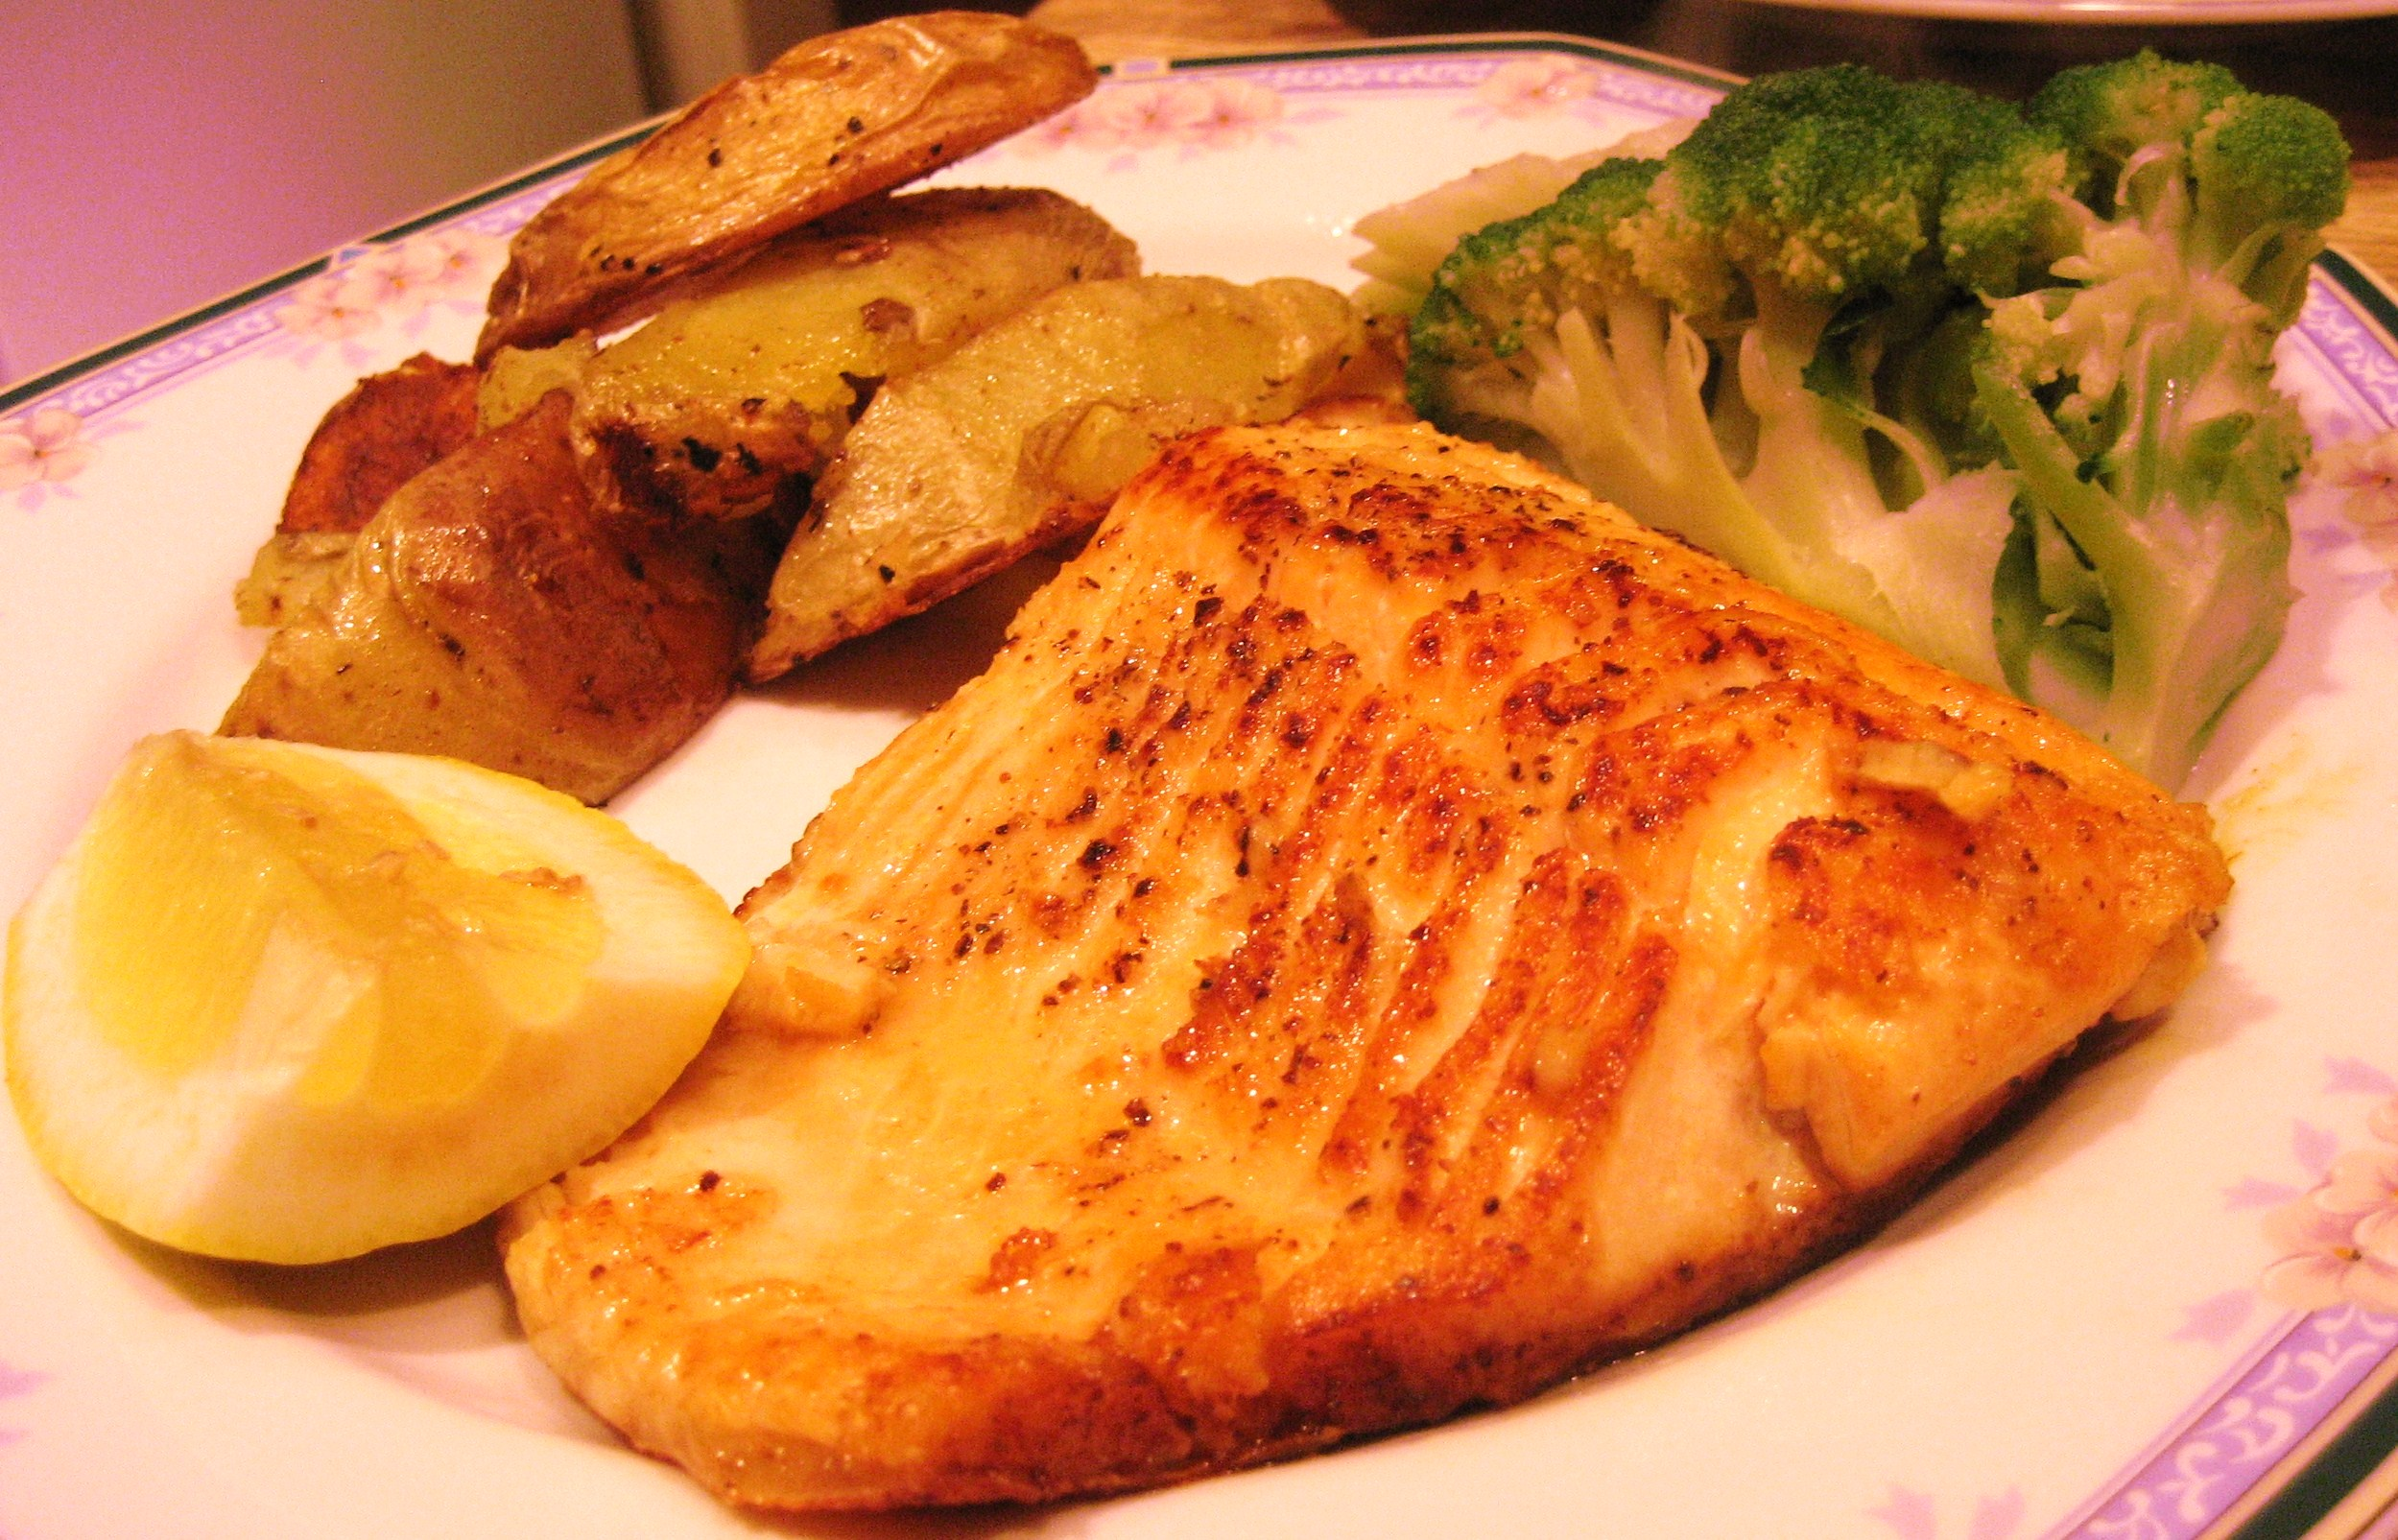 Arctic Char, Roasted Potatoes and Steamed Broccoli